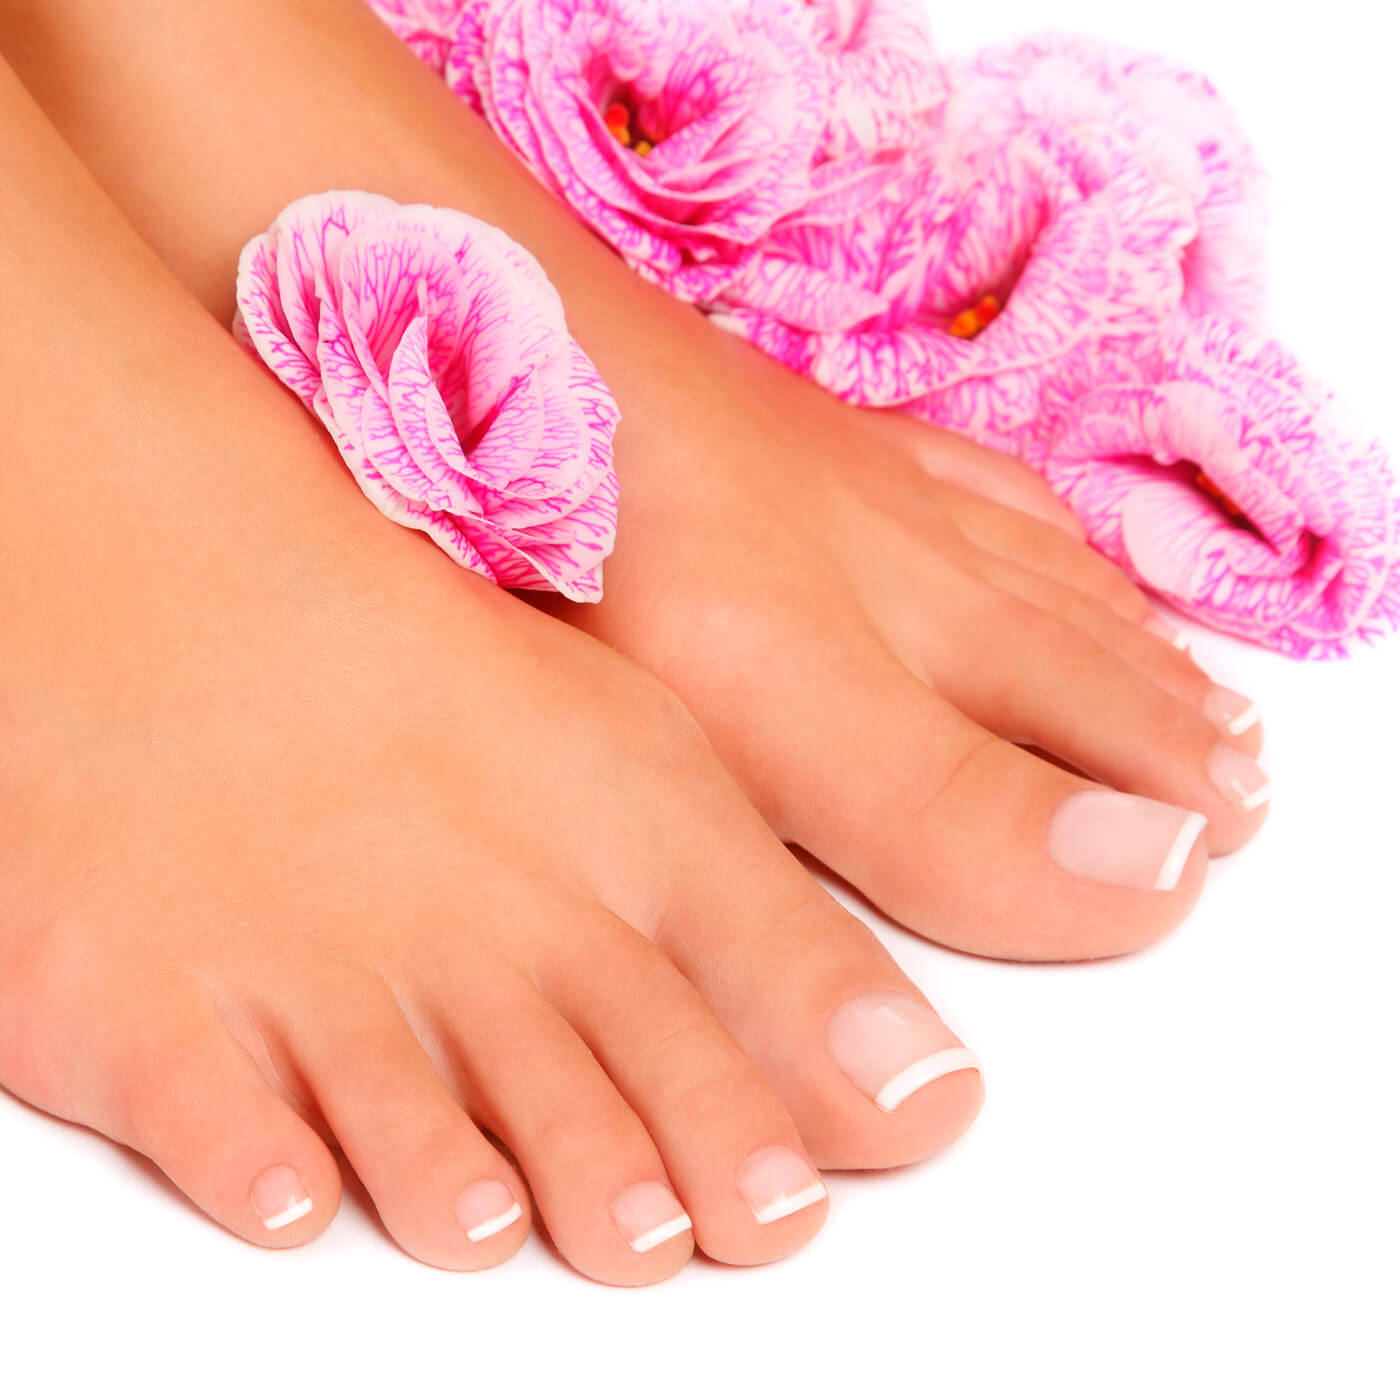 Essential Chiropractic and Healthcare Clinic - Common Podiatry Conditions and General Foot Care